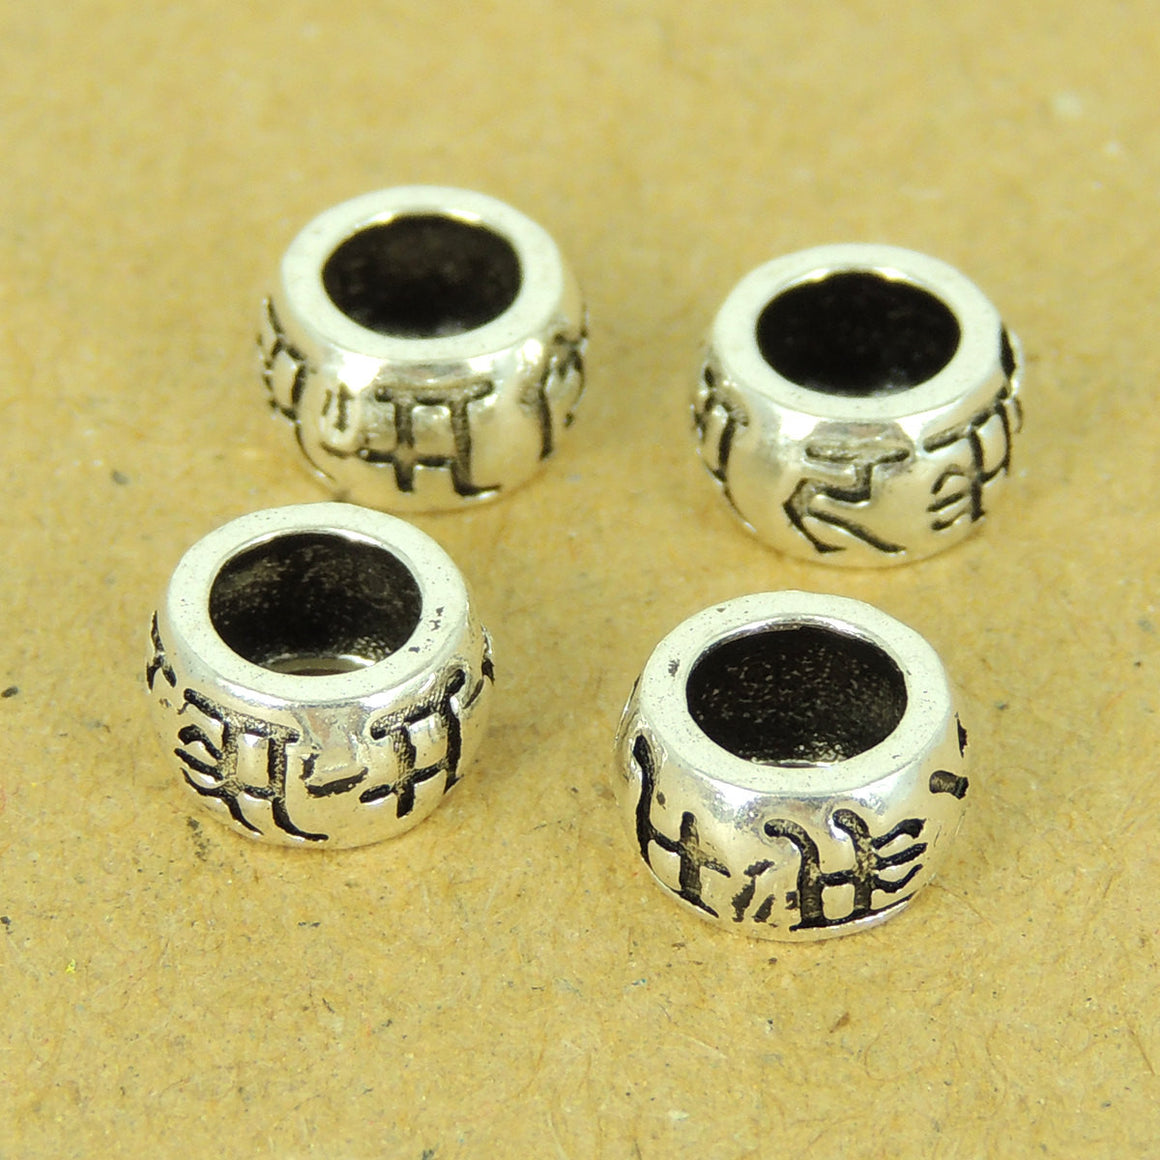 4 PCS Vintage Barrel Spacers - S925 Sterling Silver - Wholesale by Gem & Silver WSP497X4